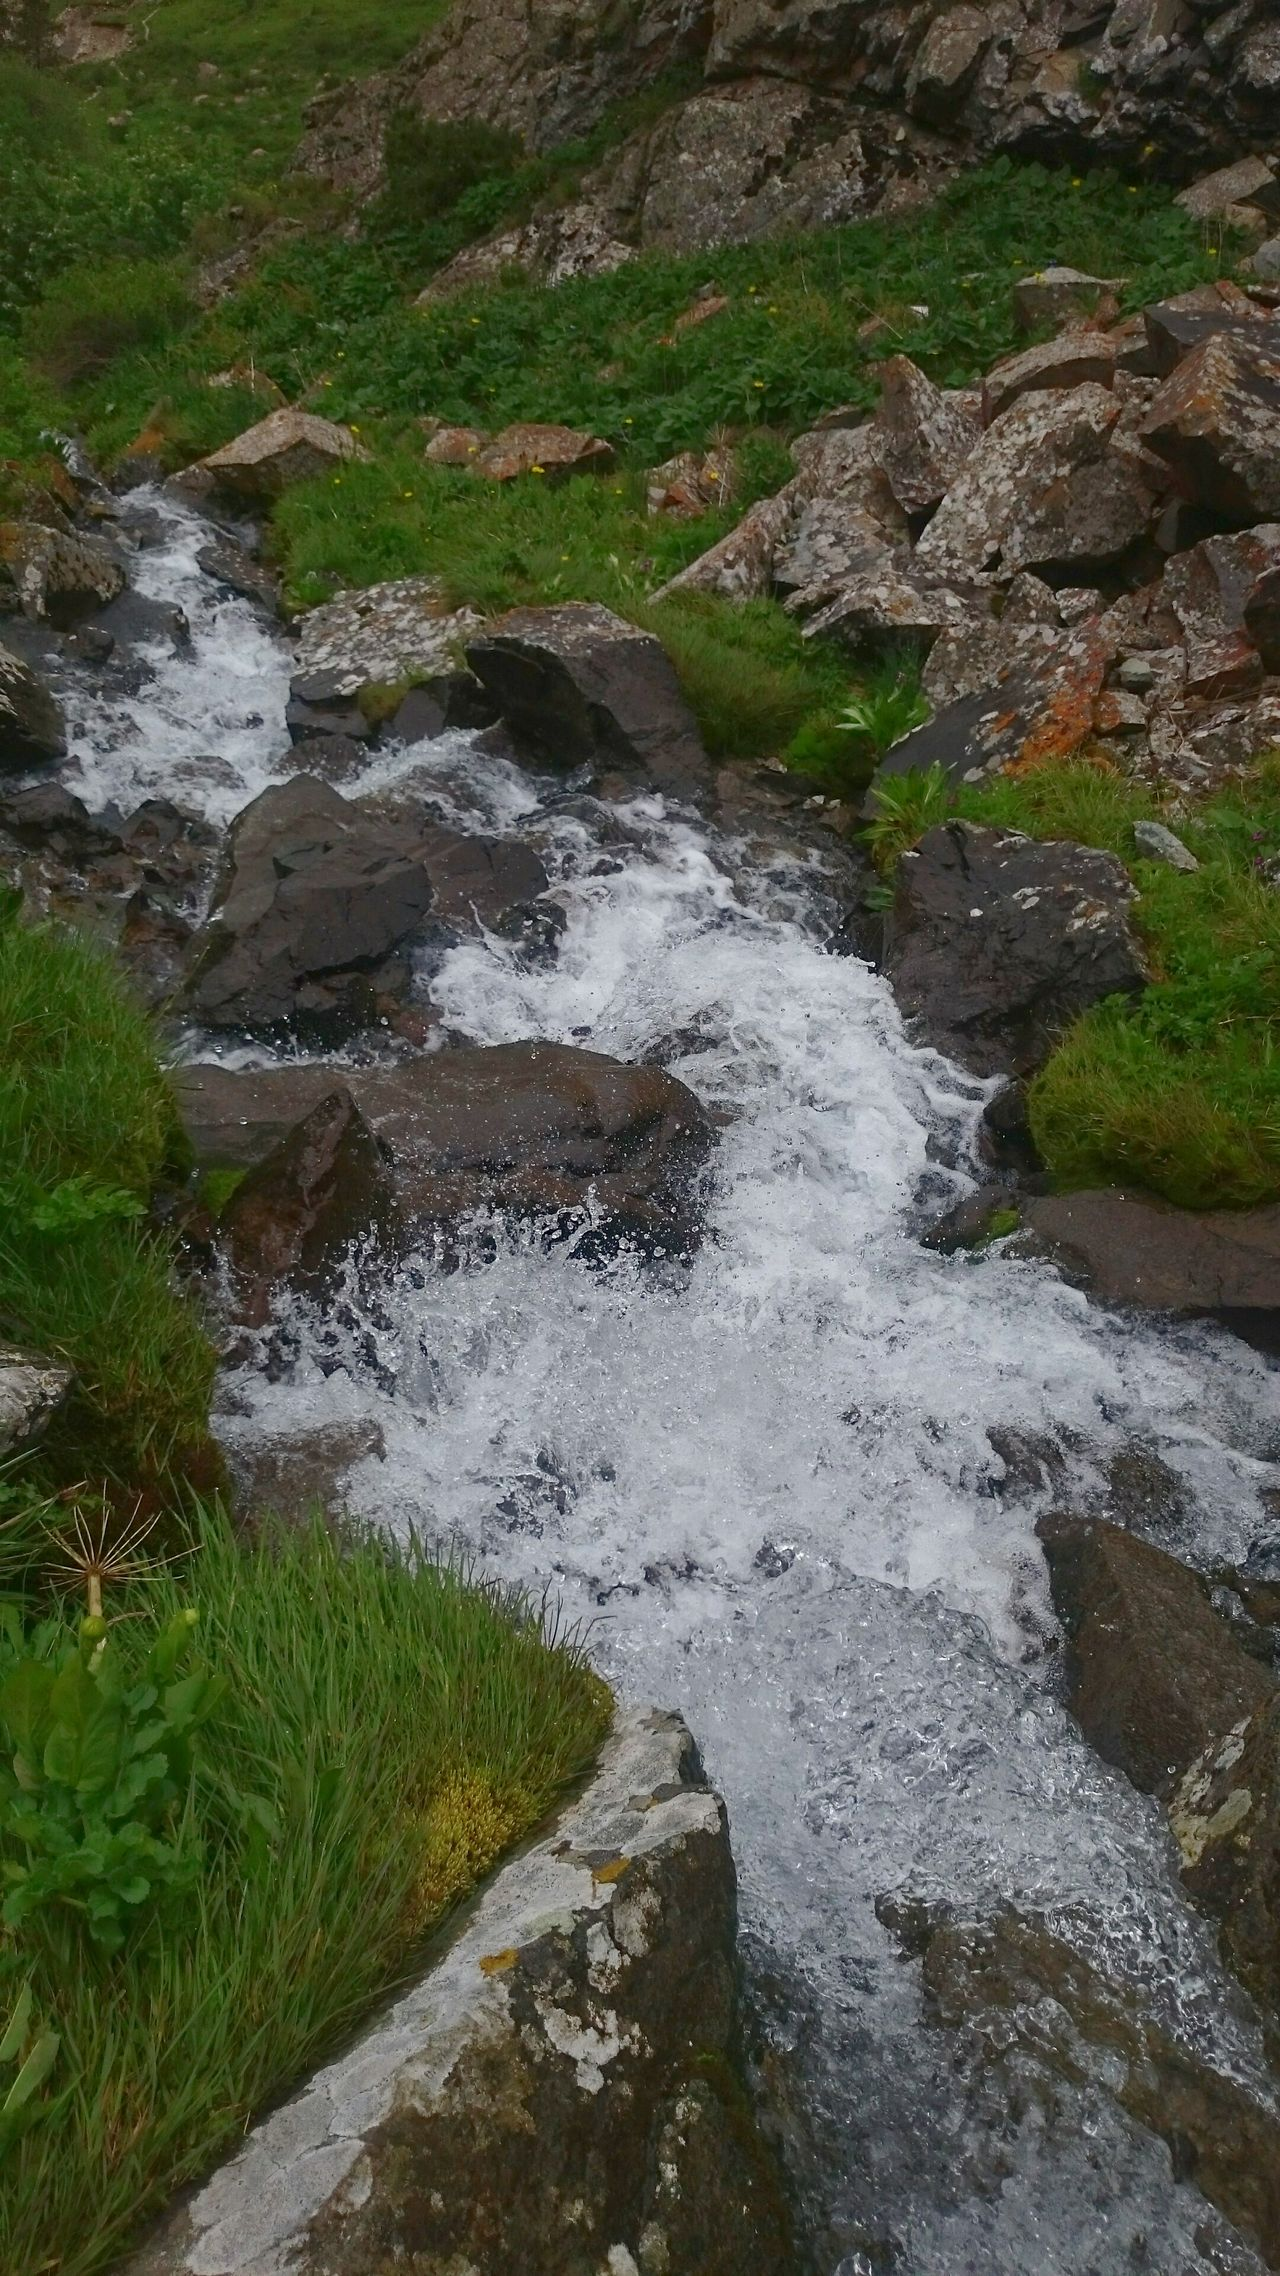 Nature Water Motion Beauty In Nature Grass Tranquility Stream - Flowing Water Scenics Crystal Clear Crystal Clear Waters River Waterfall Kyrgyzstan Nature_collection Zen Tranquility Grass Hiking Traveling Hikingadventures Travel Destinations Mountain_collection Mountain View Green Stone